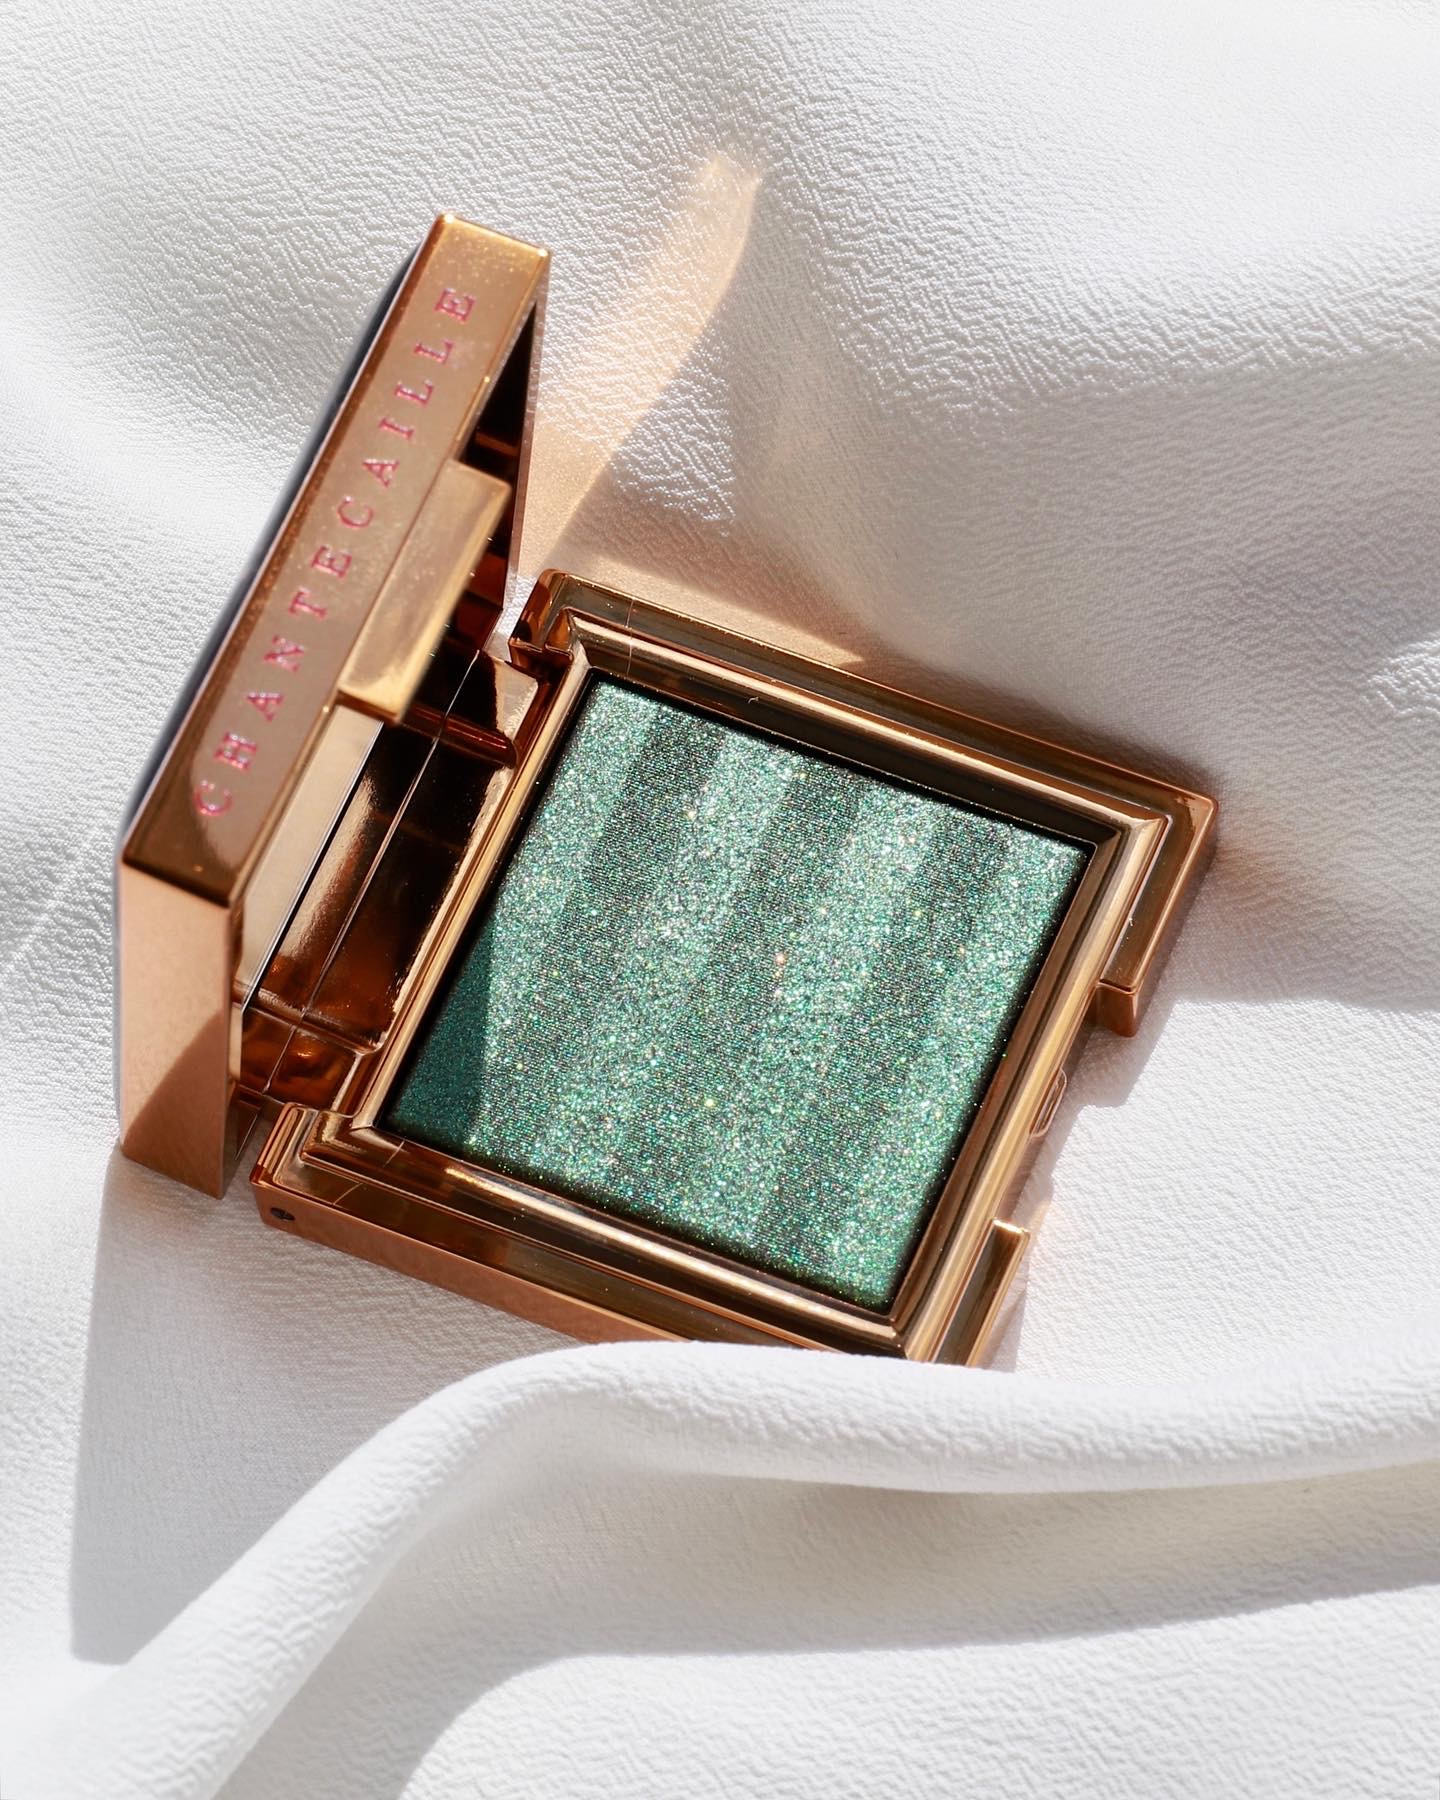 Chantecaille Fall 2021 Collection Luminescent Eye Shade Tiger